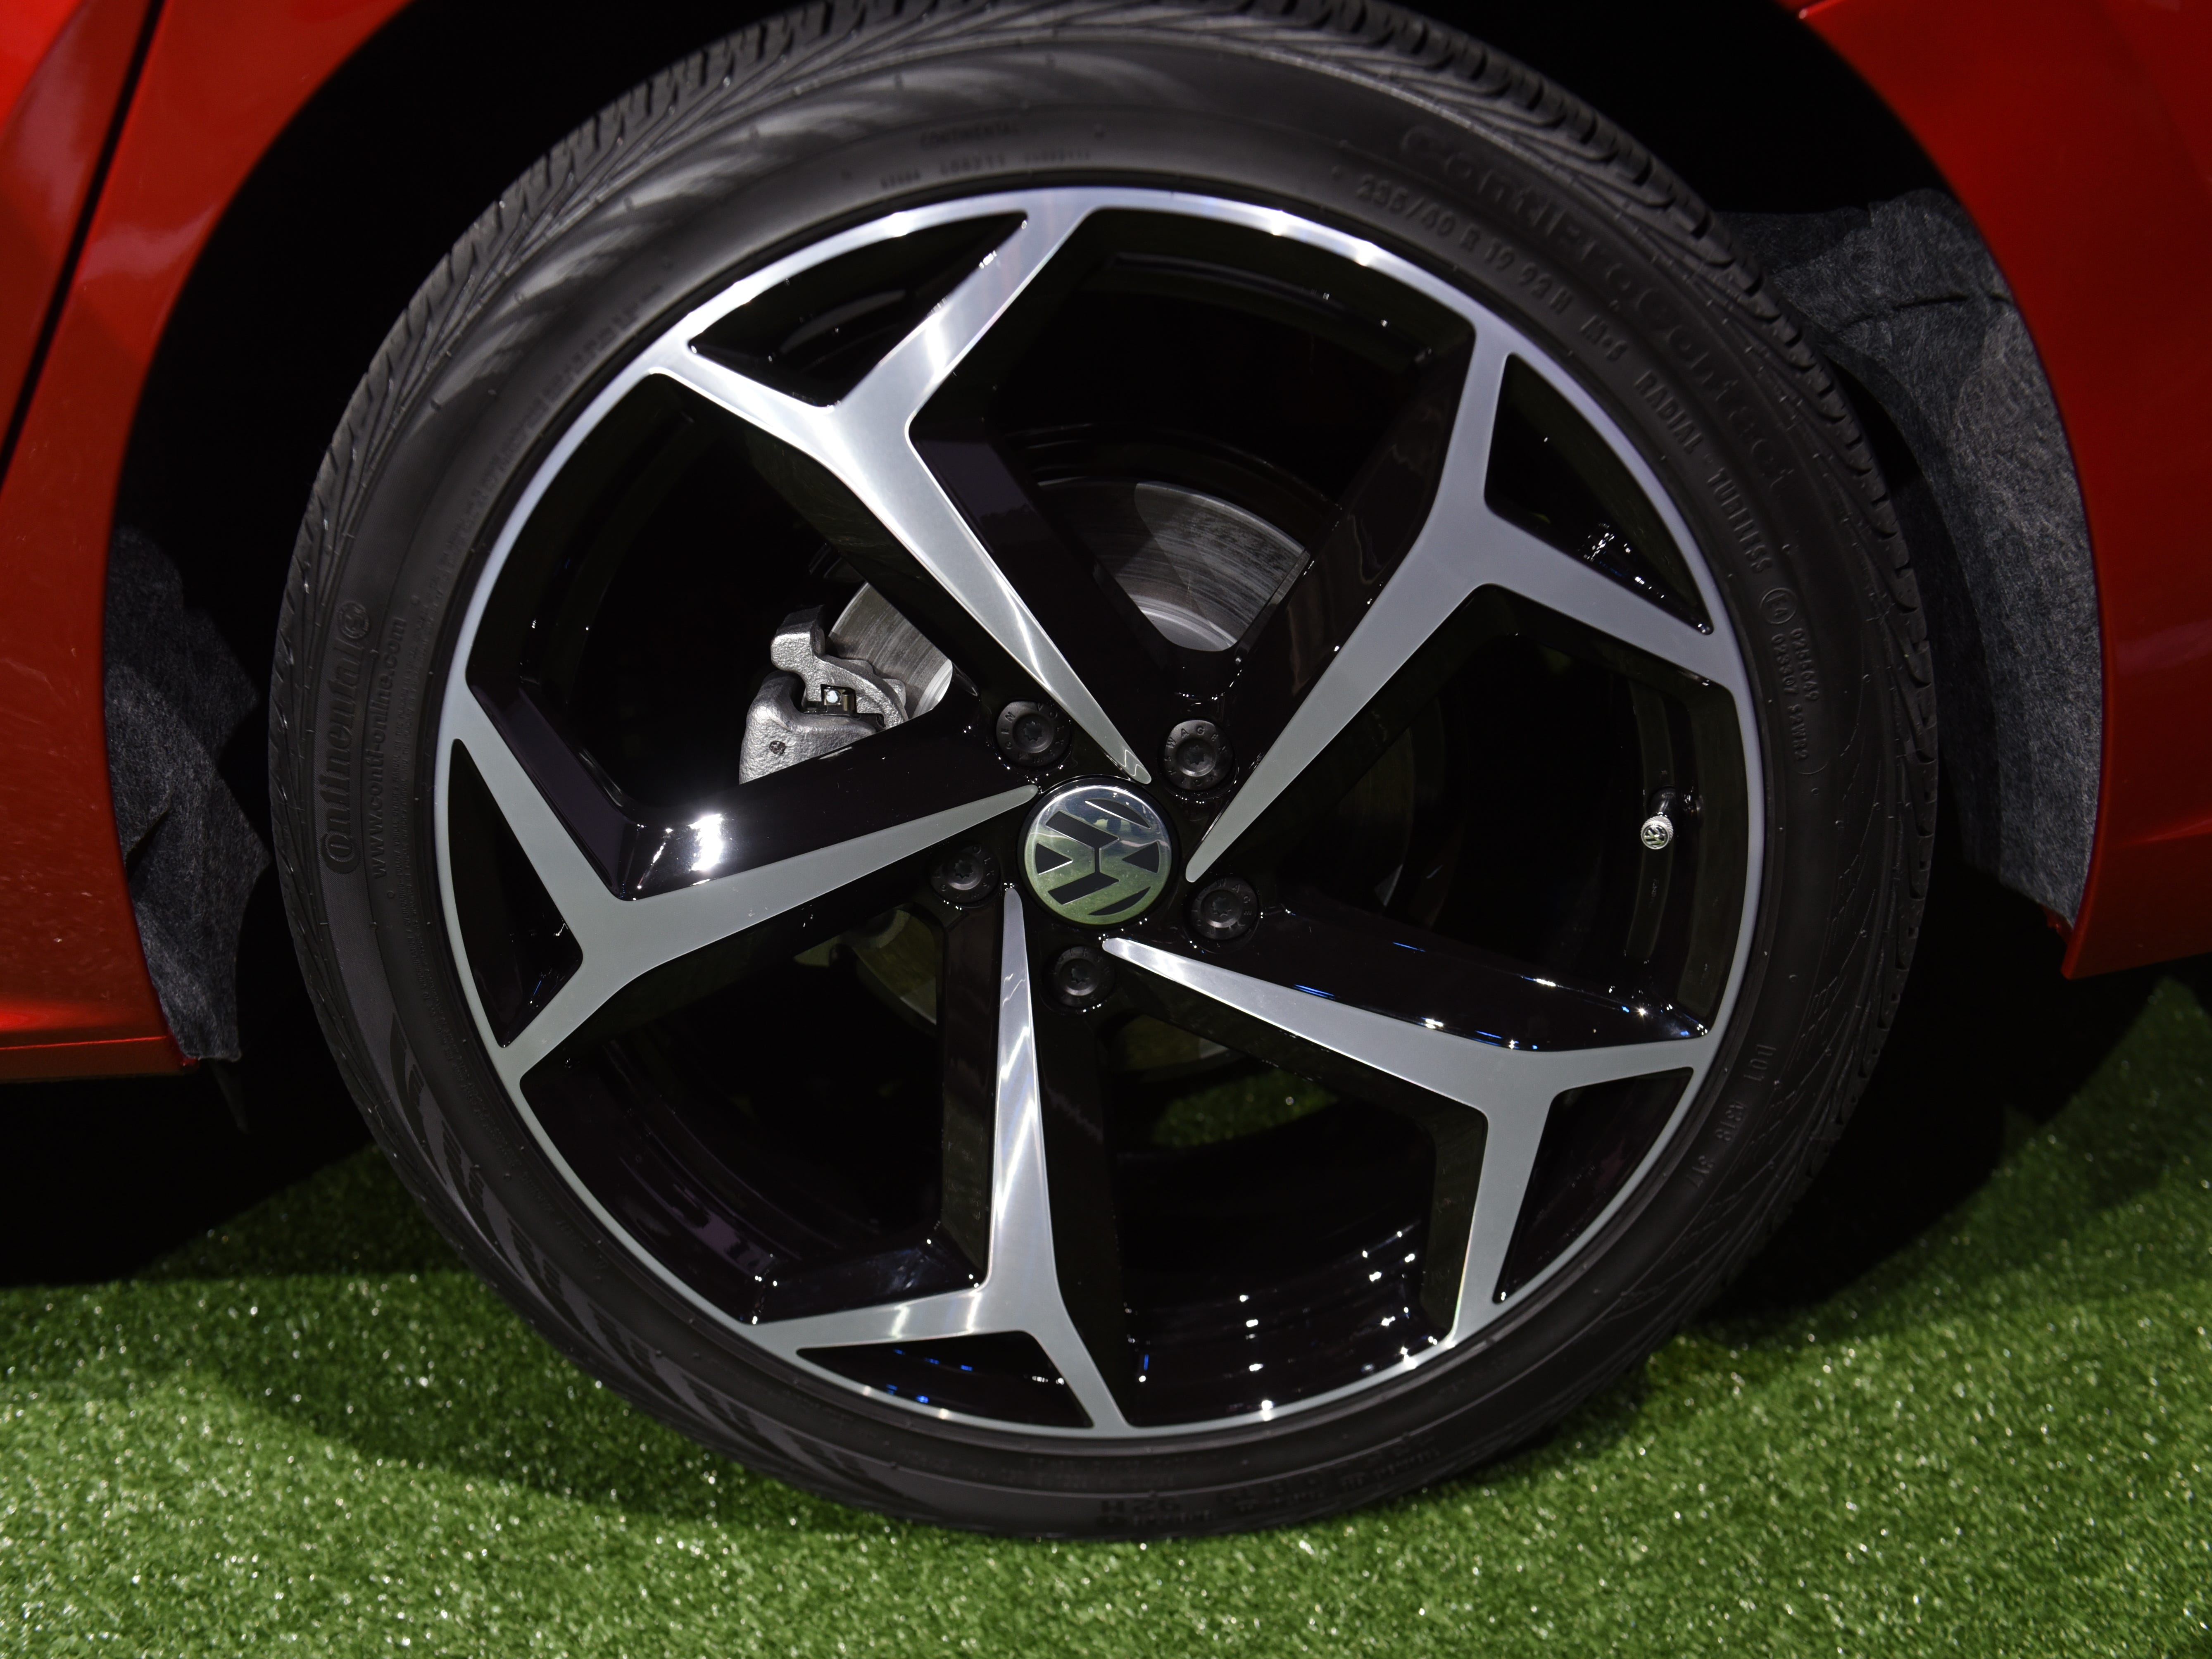 Seventeen-inch wheels come standard, though 18- and 19-inch wheels are also available.